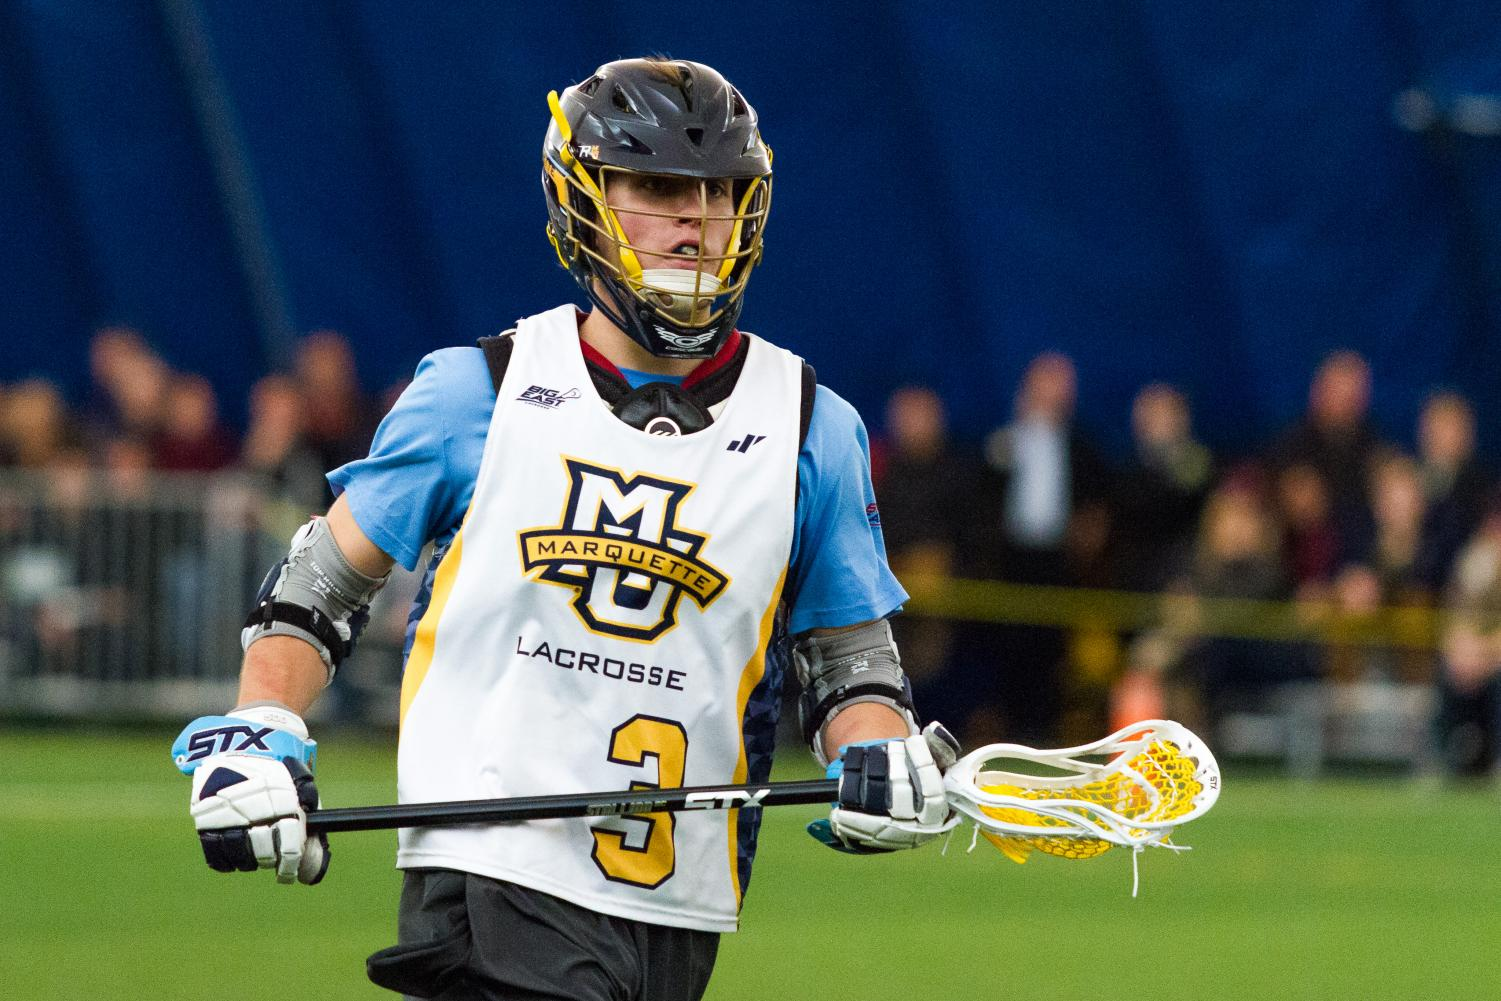 Senior Mikey Zadroga III is one of Marquette's leaders on defense.